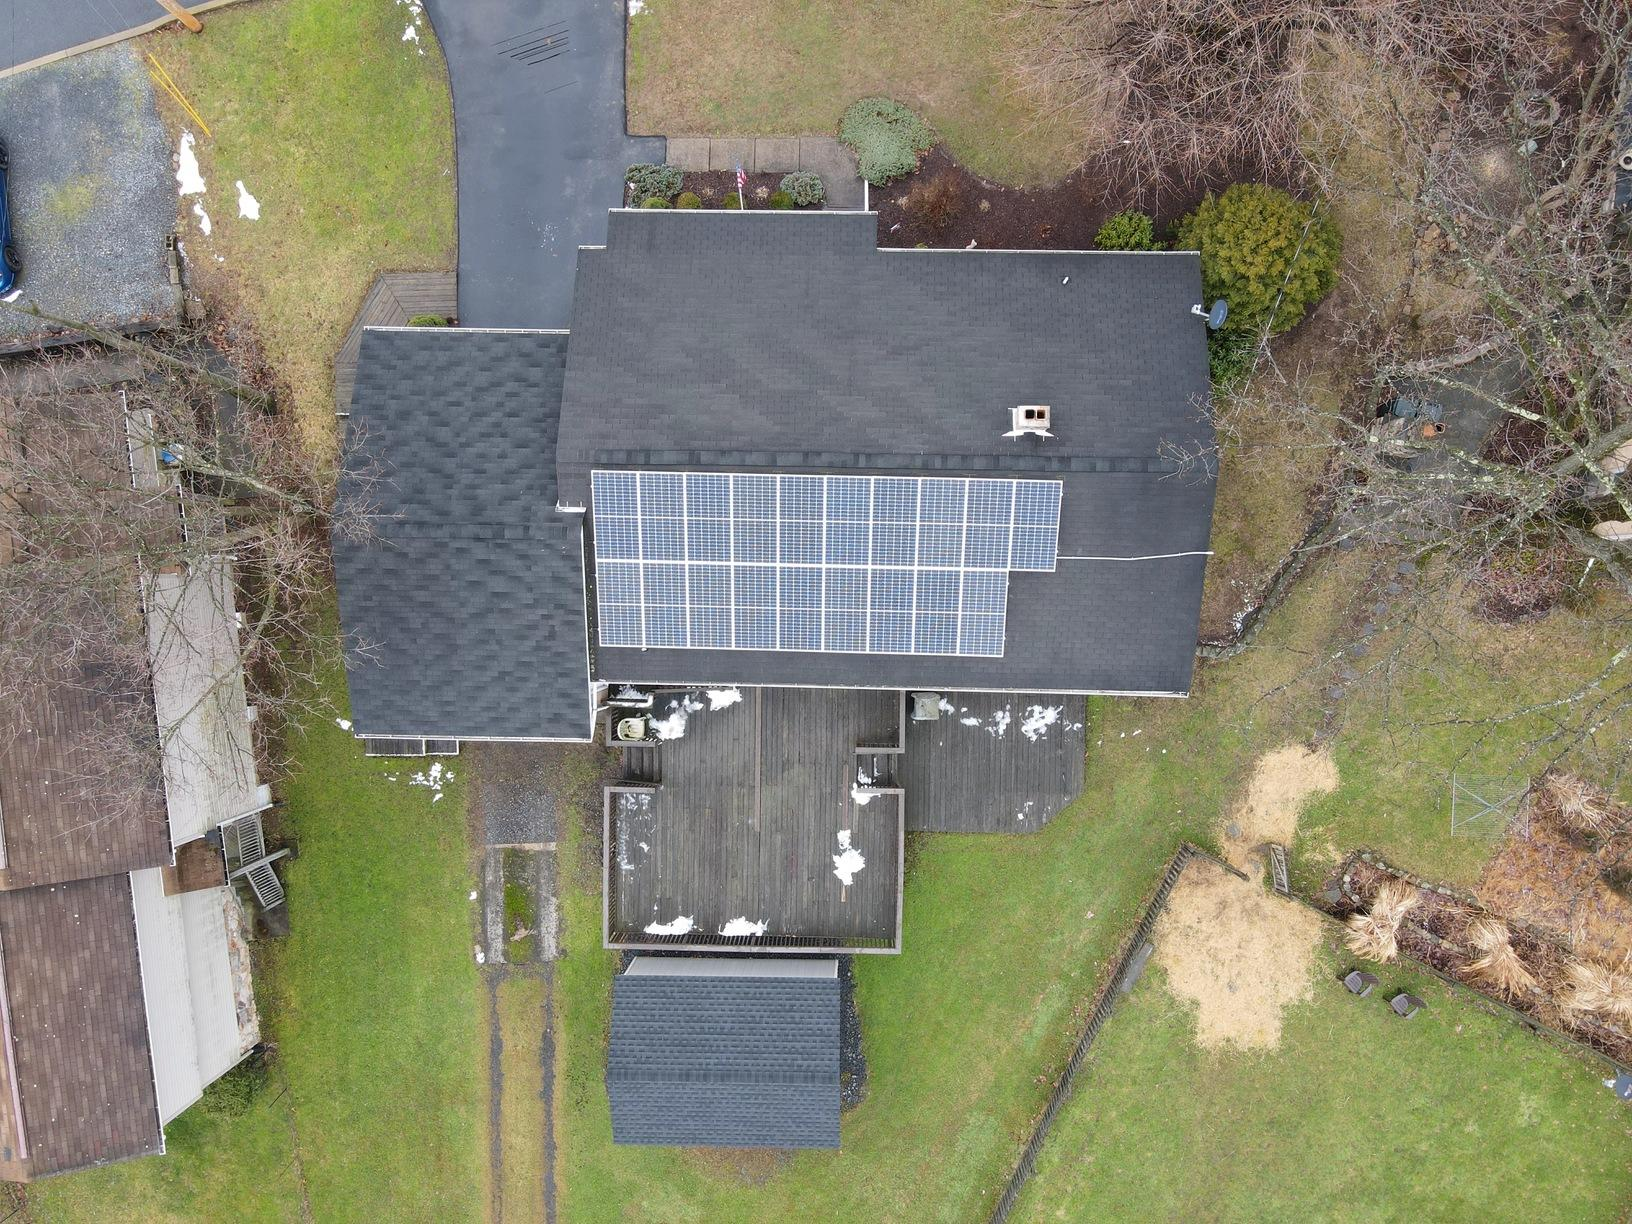 Wayne and Lucille's Solar Installation Done in Roseto, Pa